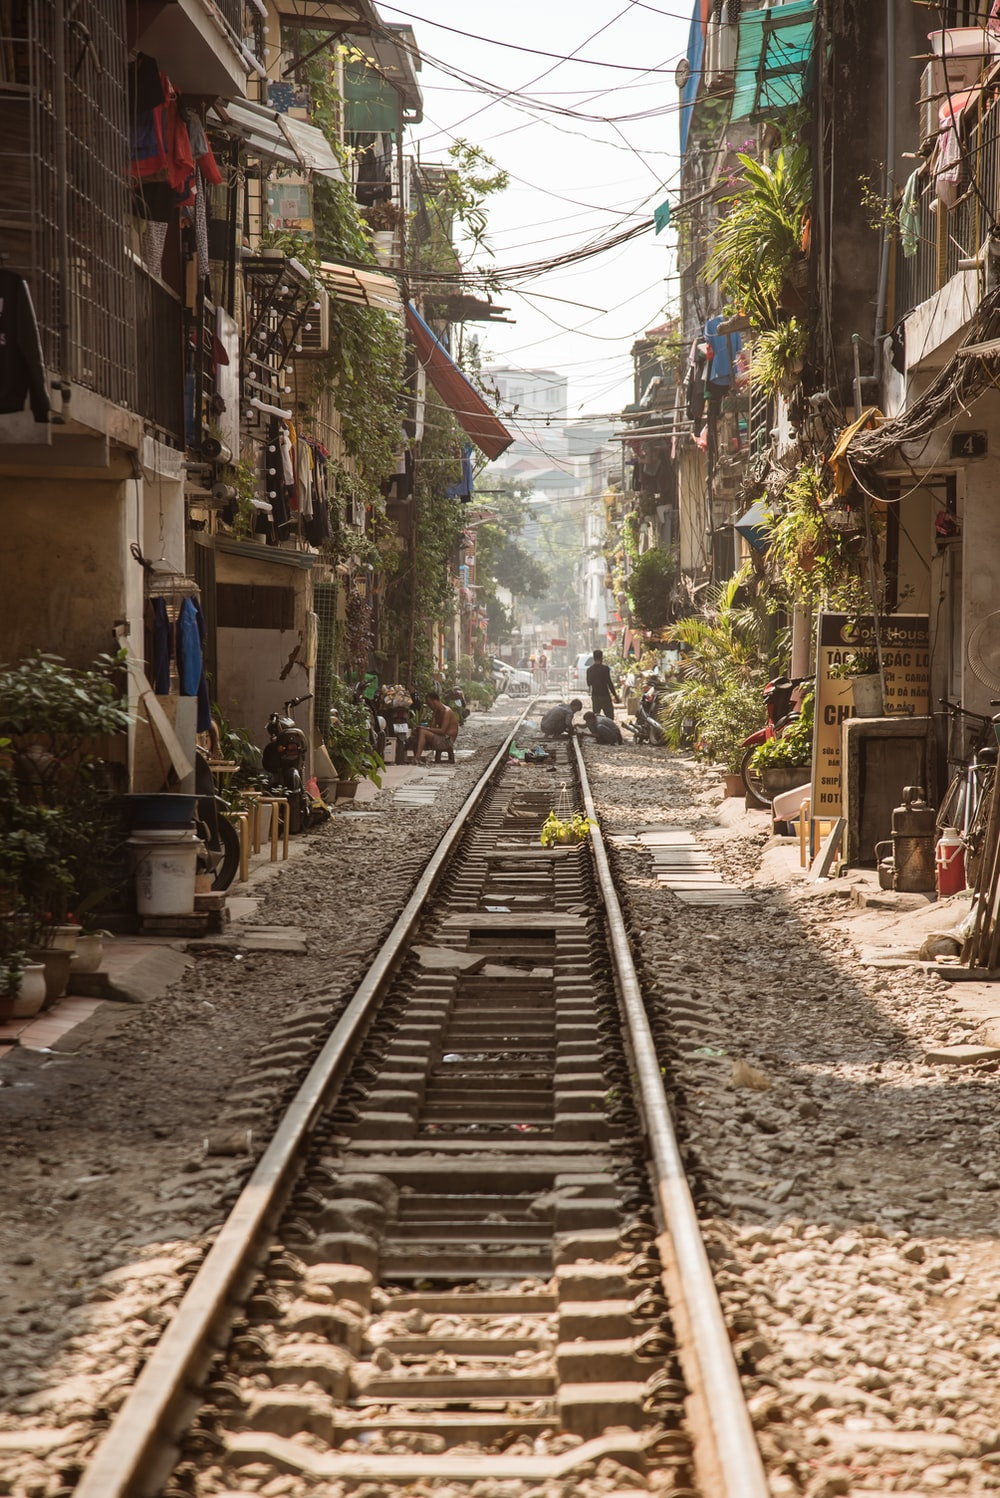 train rail between houses during daytime